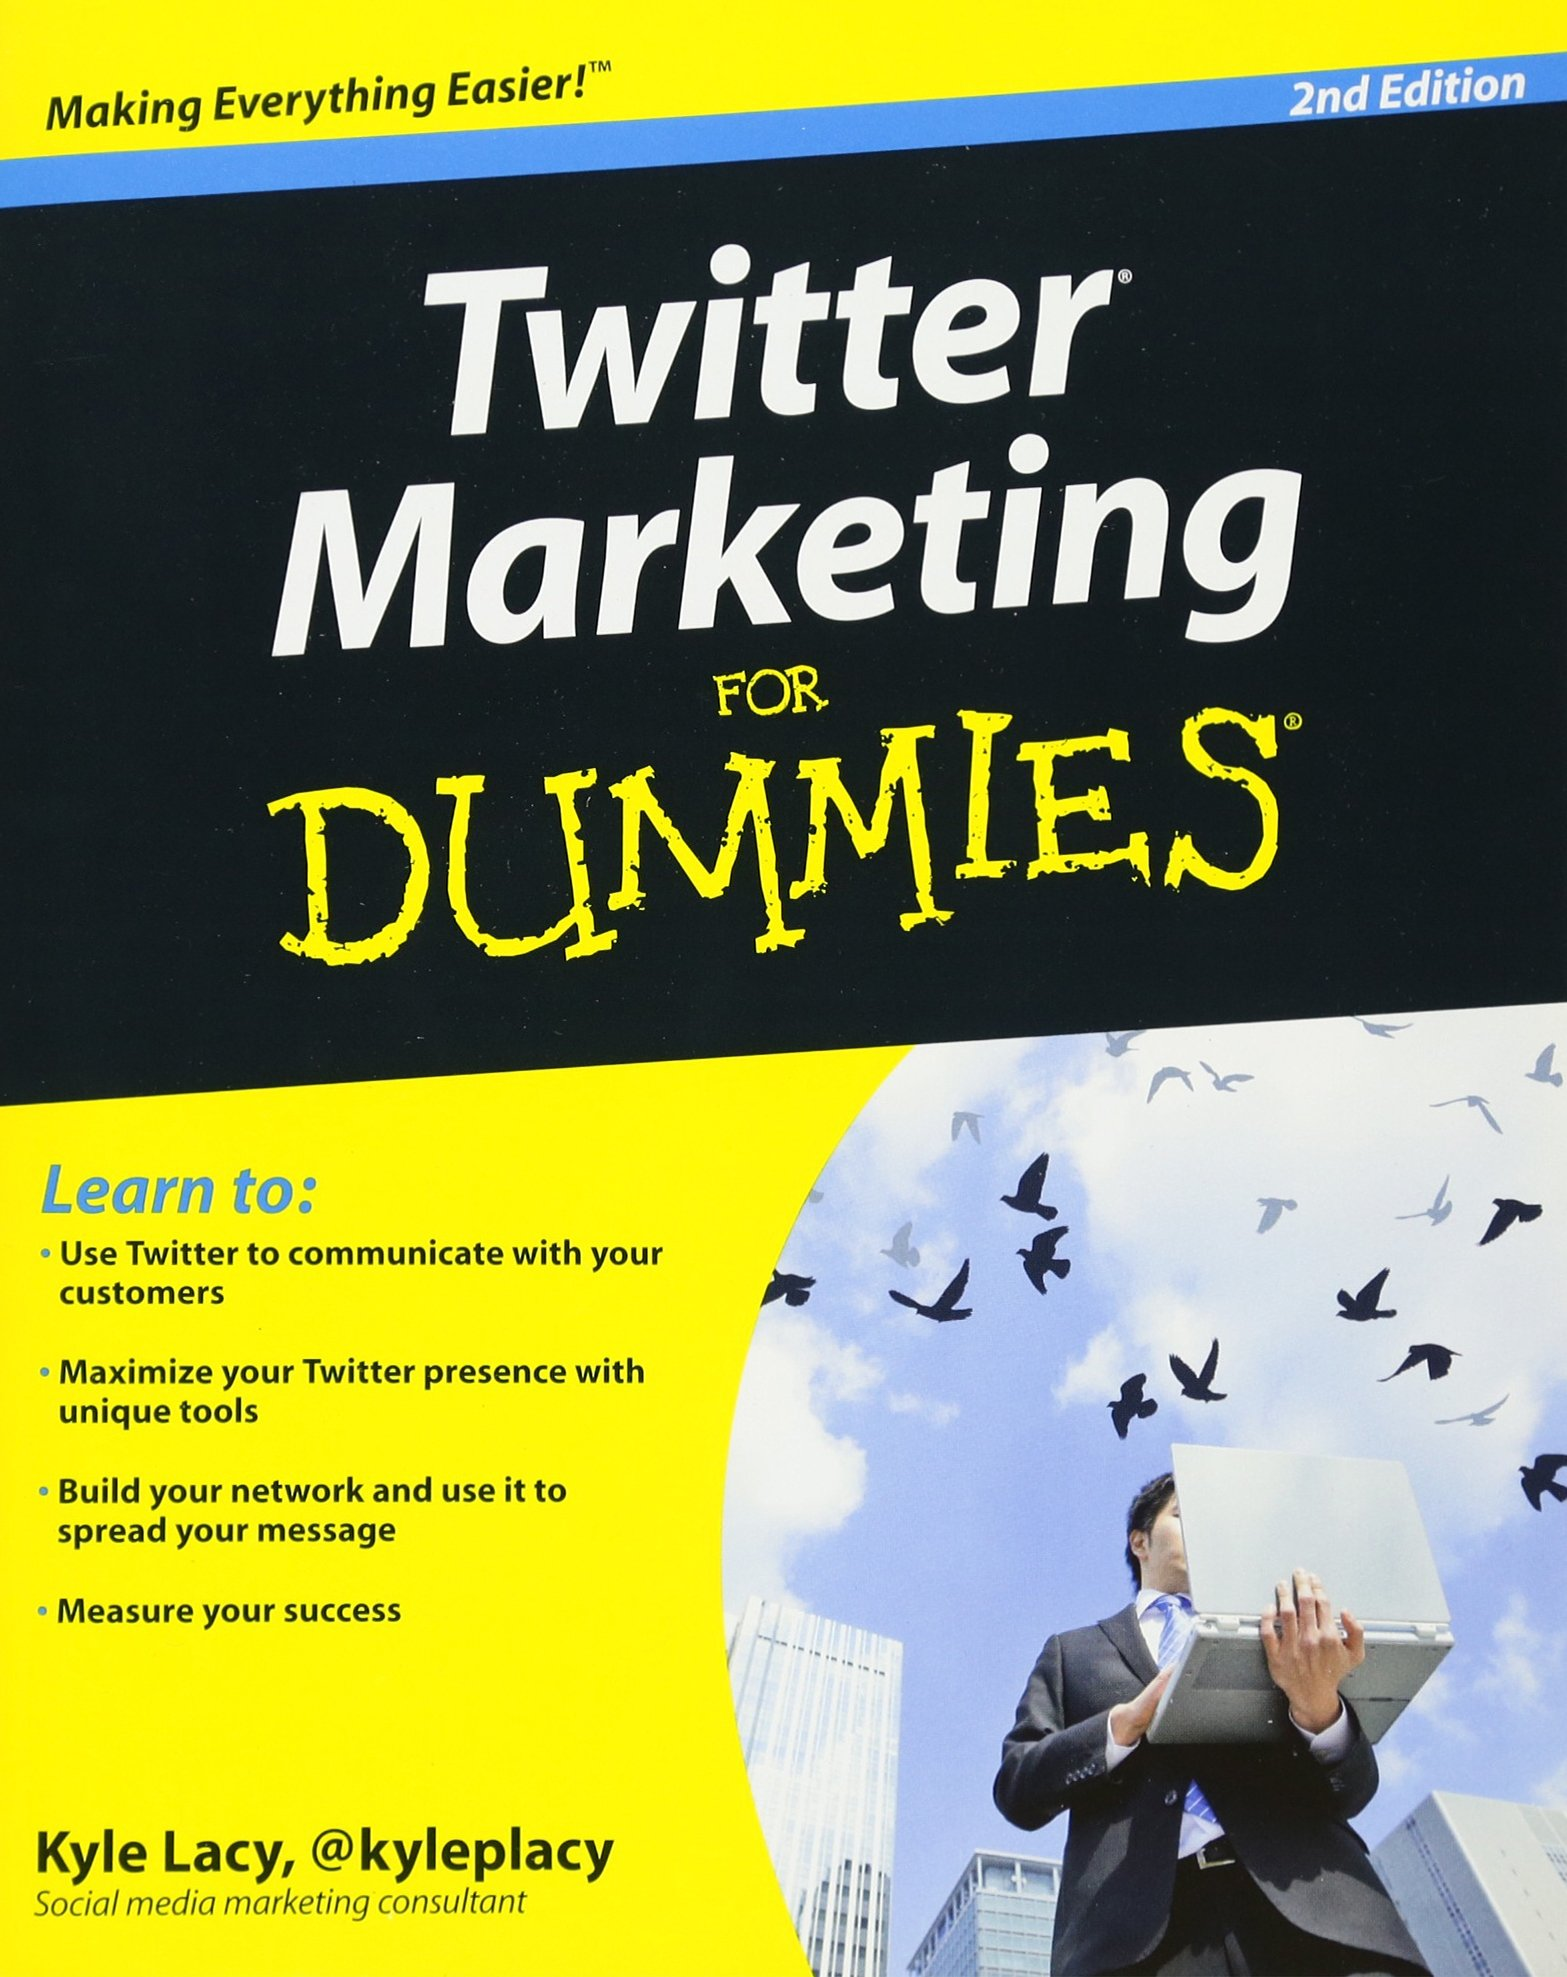 Twitter Marketing Dummies Kyle Lacy